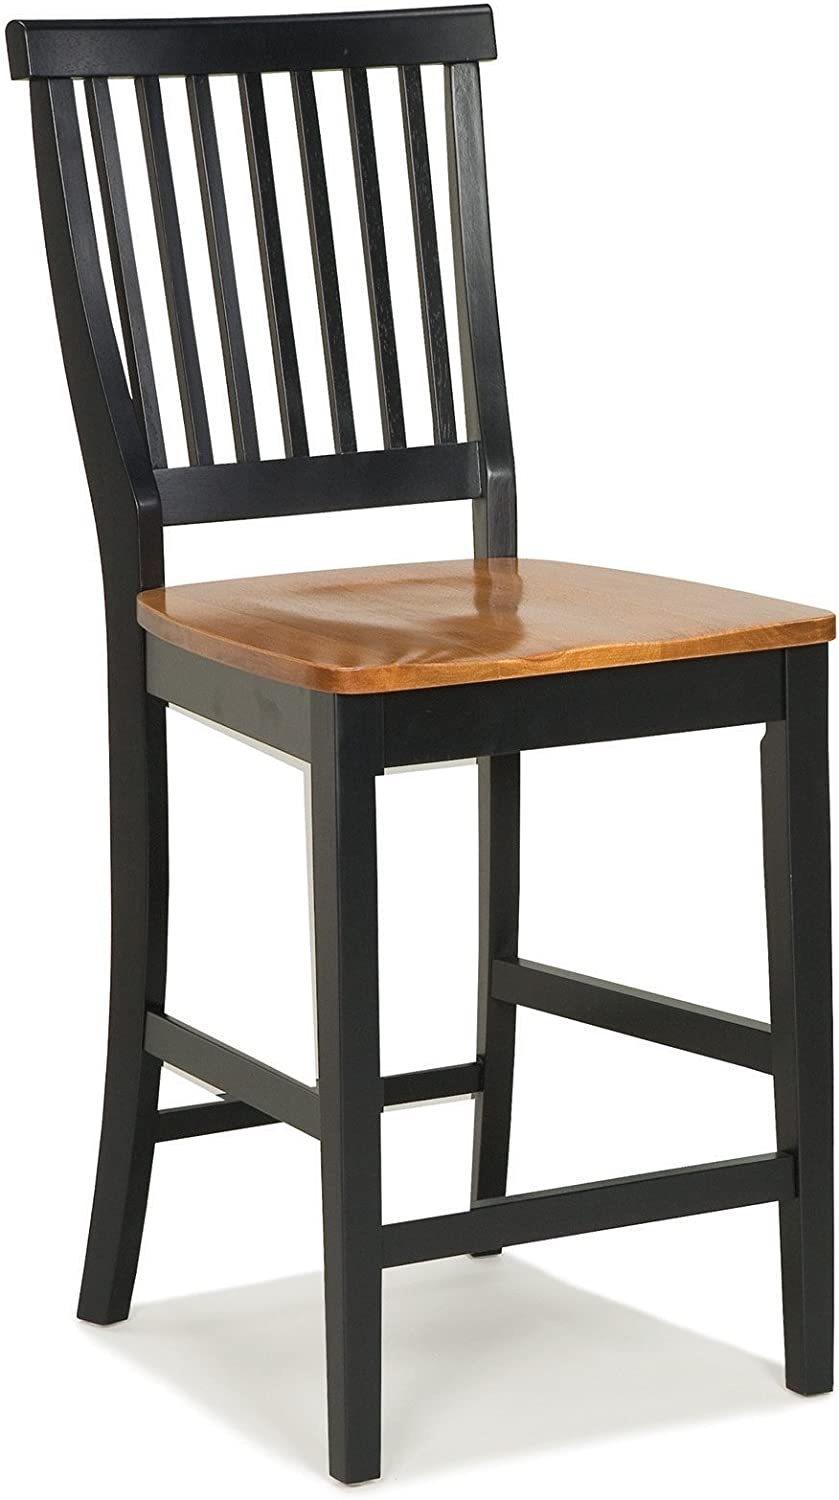 B002QXELWC Home Styles Wood Counter Stool with Slat Backs and Black and Rich Oak Seat Finish 71w7cBW9isL